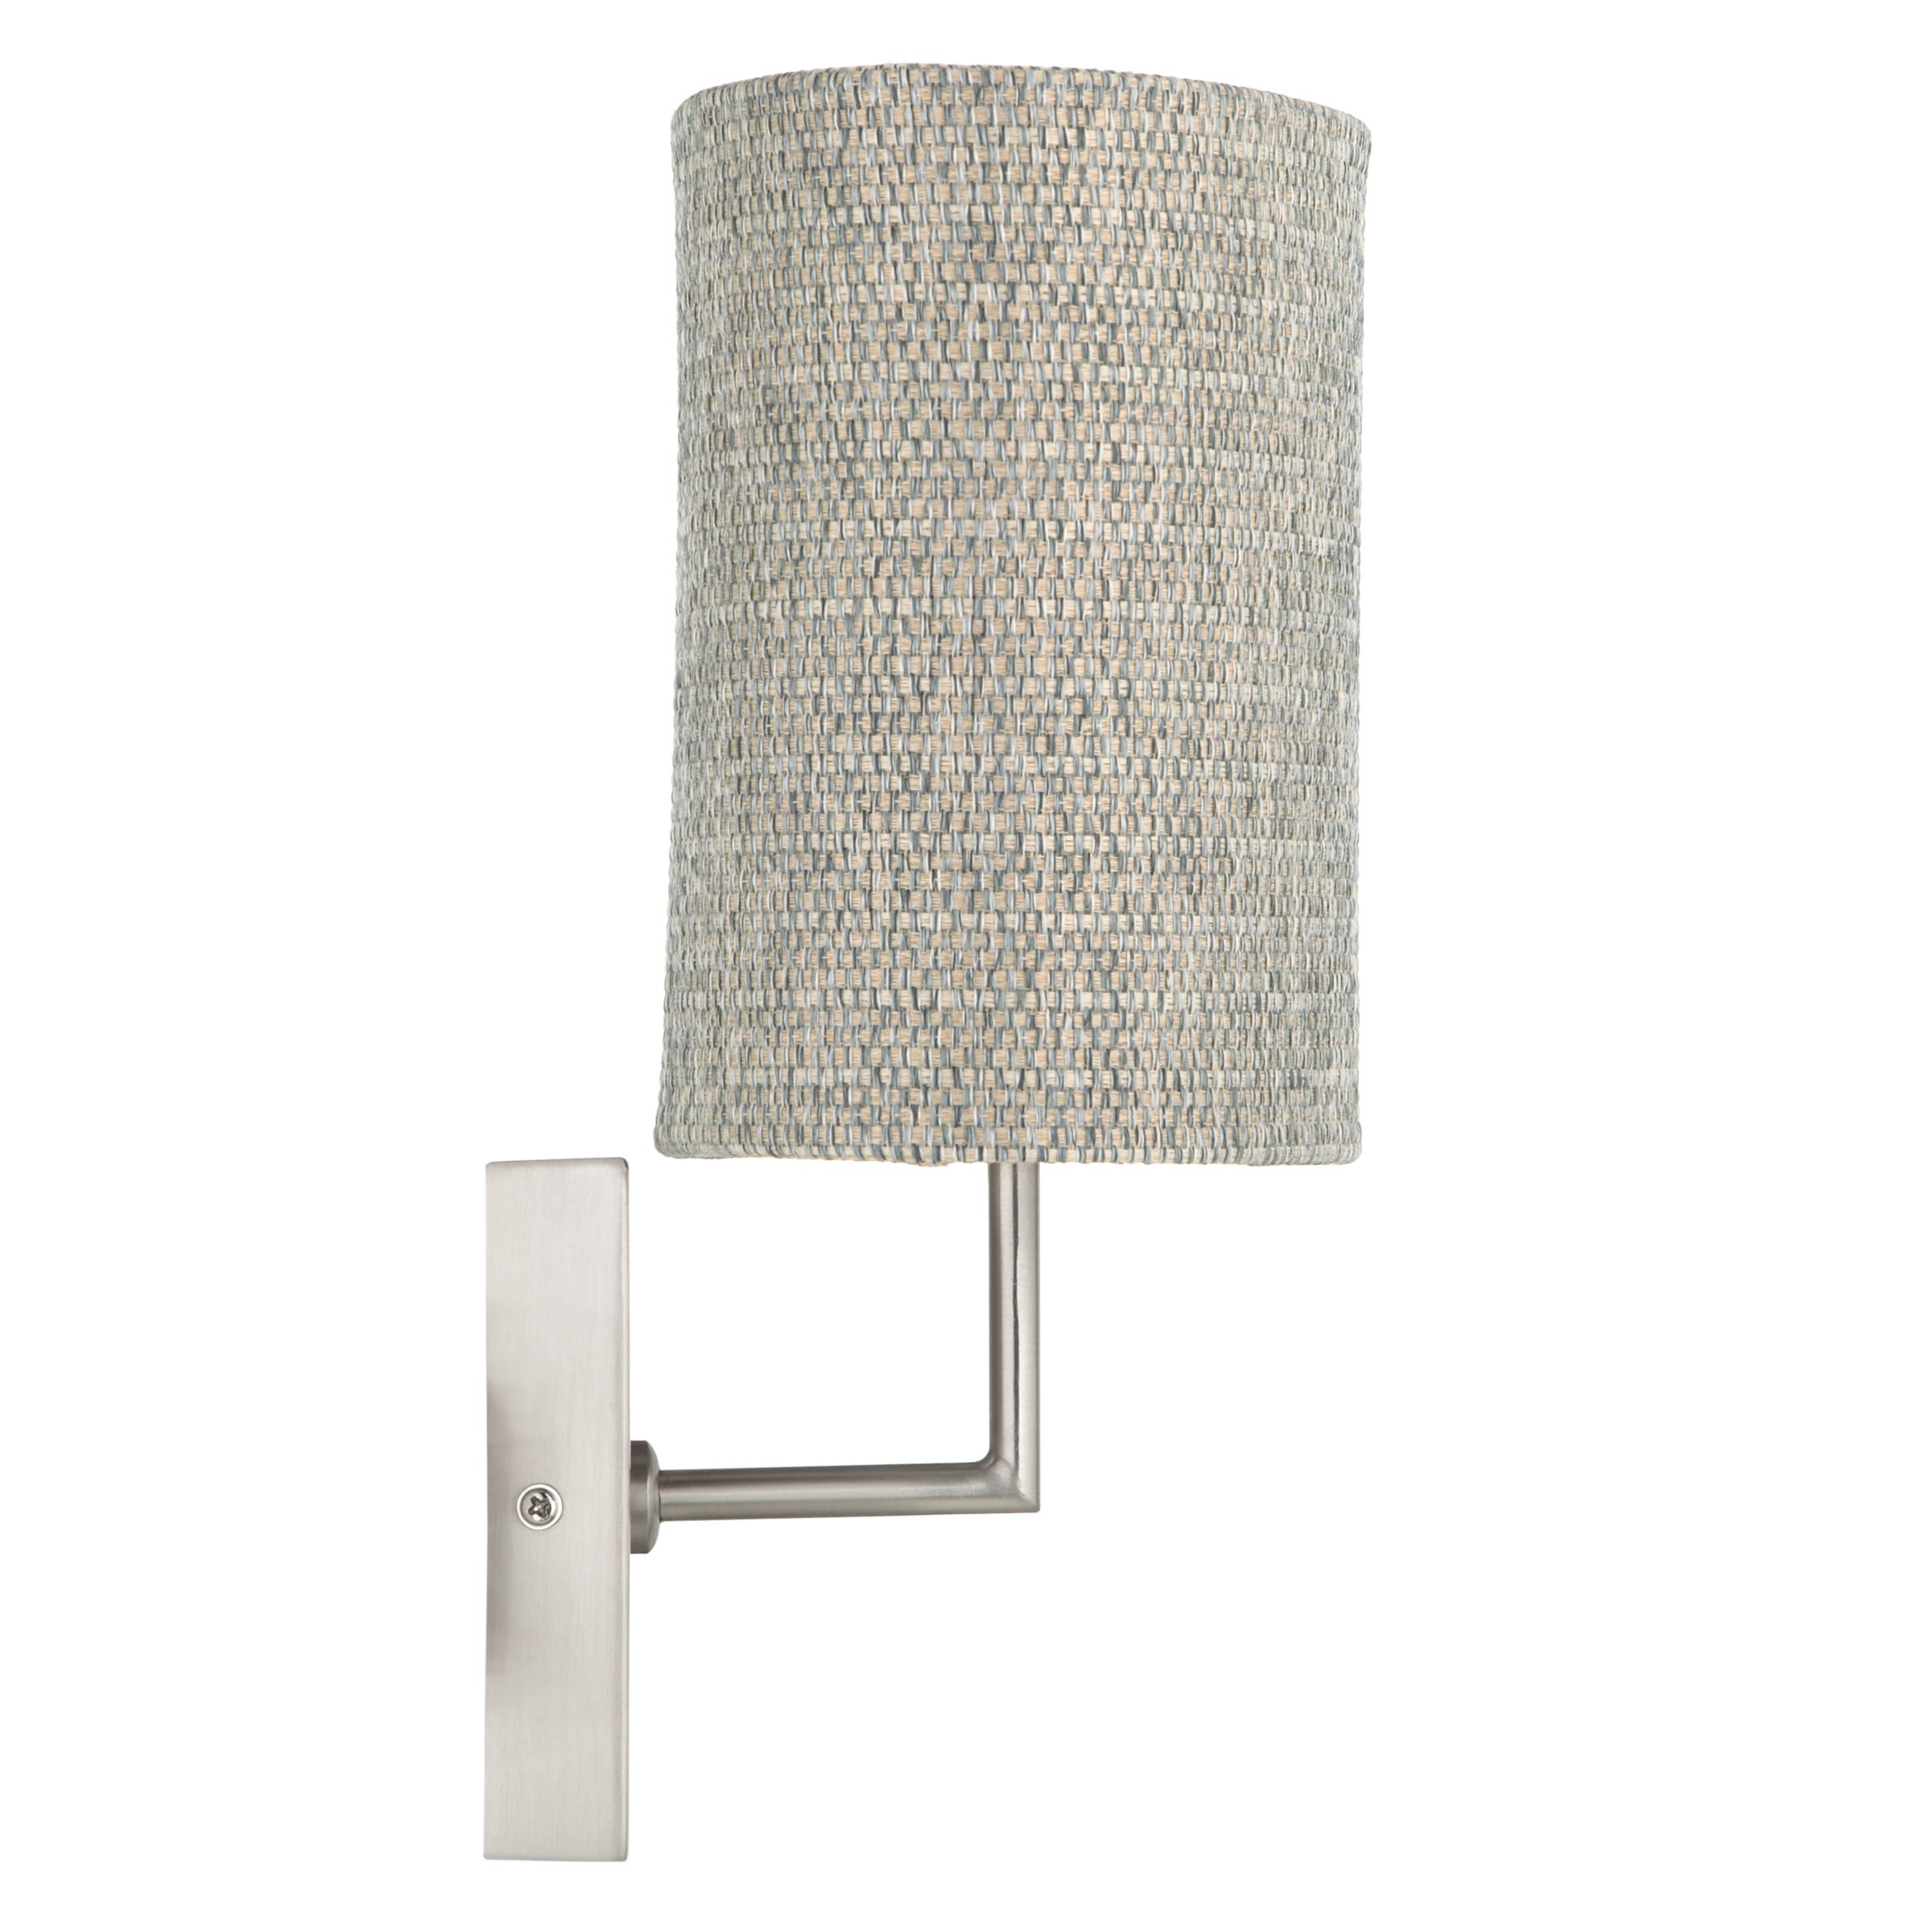 John Lewis Wall Lamp Shades : Buy John Lewis Lorenzo Textured Shade Wall Light John Lewis